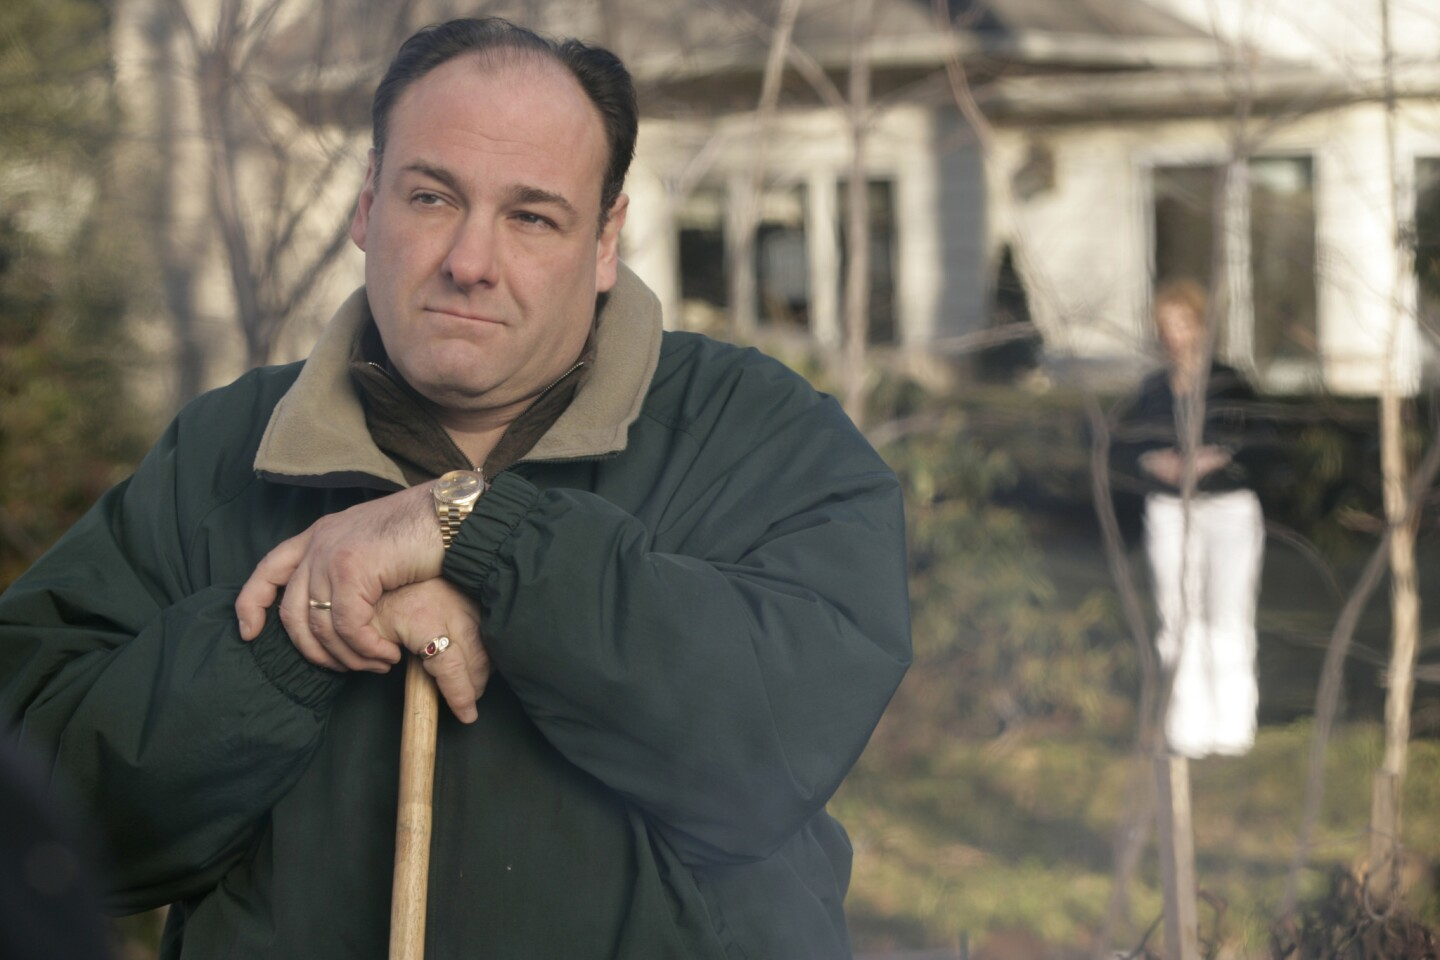 """James Gandolfini, who is best known for his Emmy-winning role as mob boss Tony Soprano in HBO's """"The Sopranos,"""" had a career that spanned more than two decades. Here's a look back at a few of his roles in television and film."""